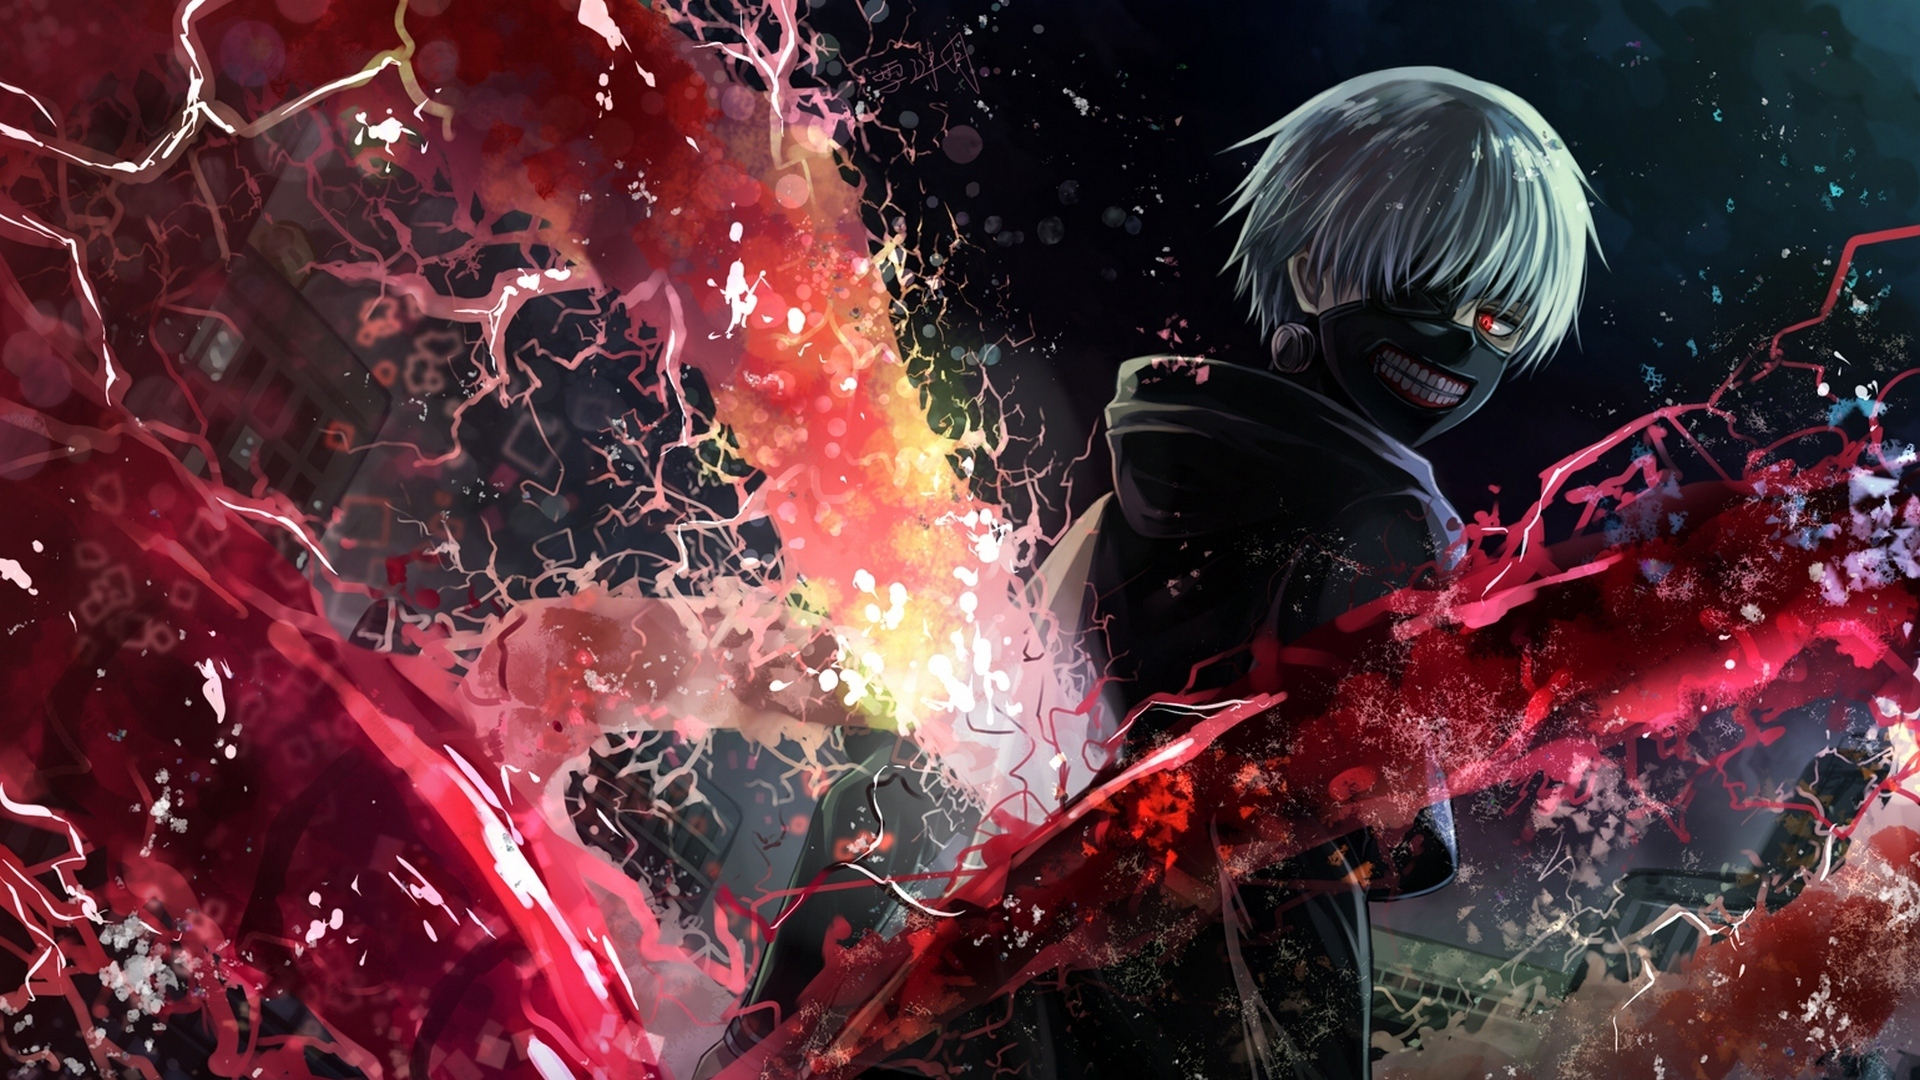 Full HD 1080p Anime Wallpapers, Desktop Backgrounds HD, Pictures